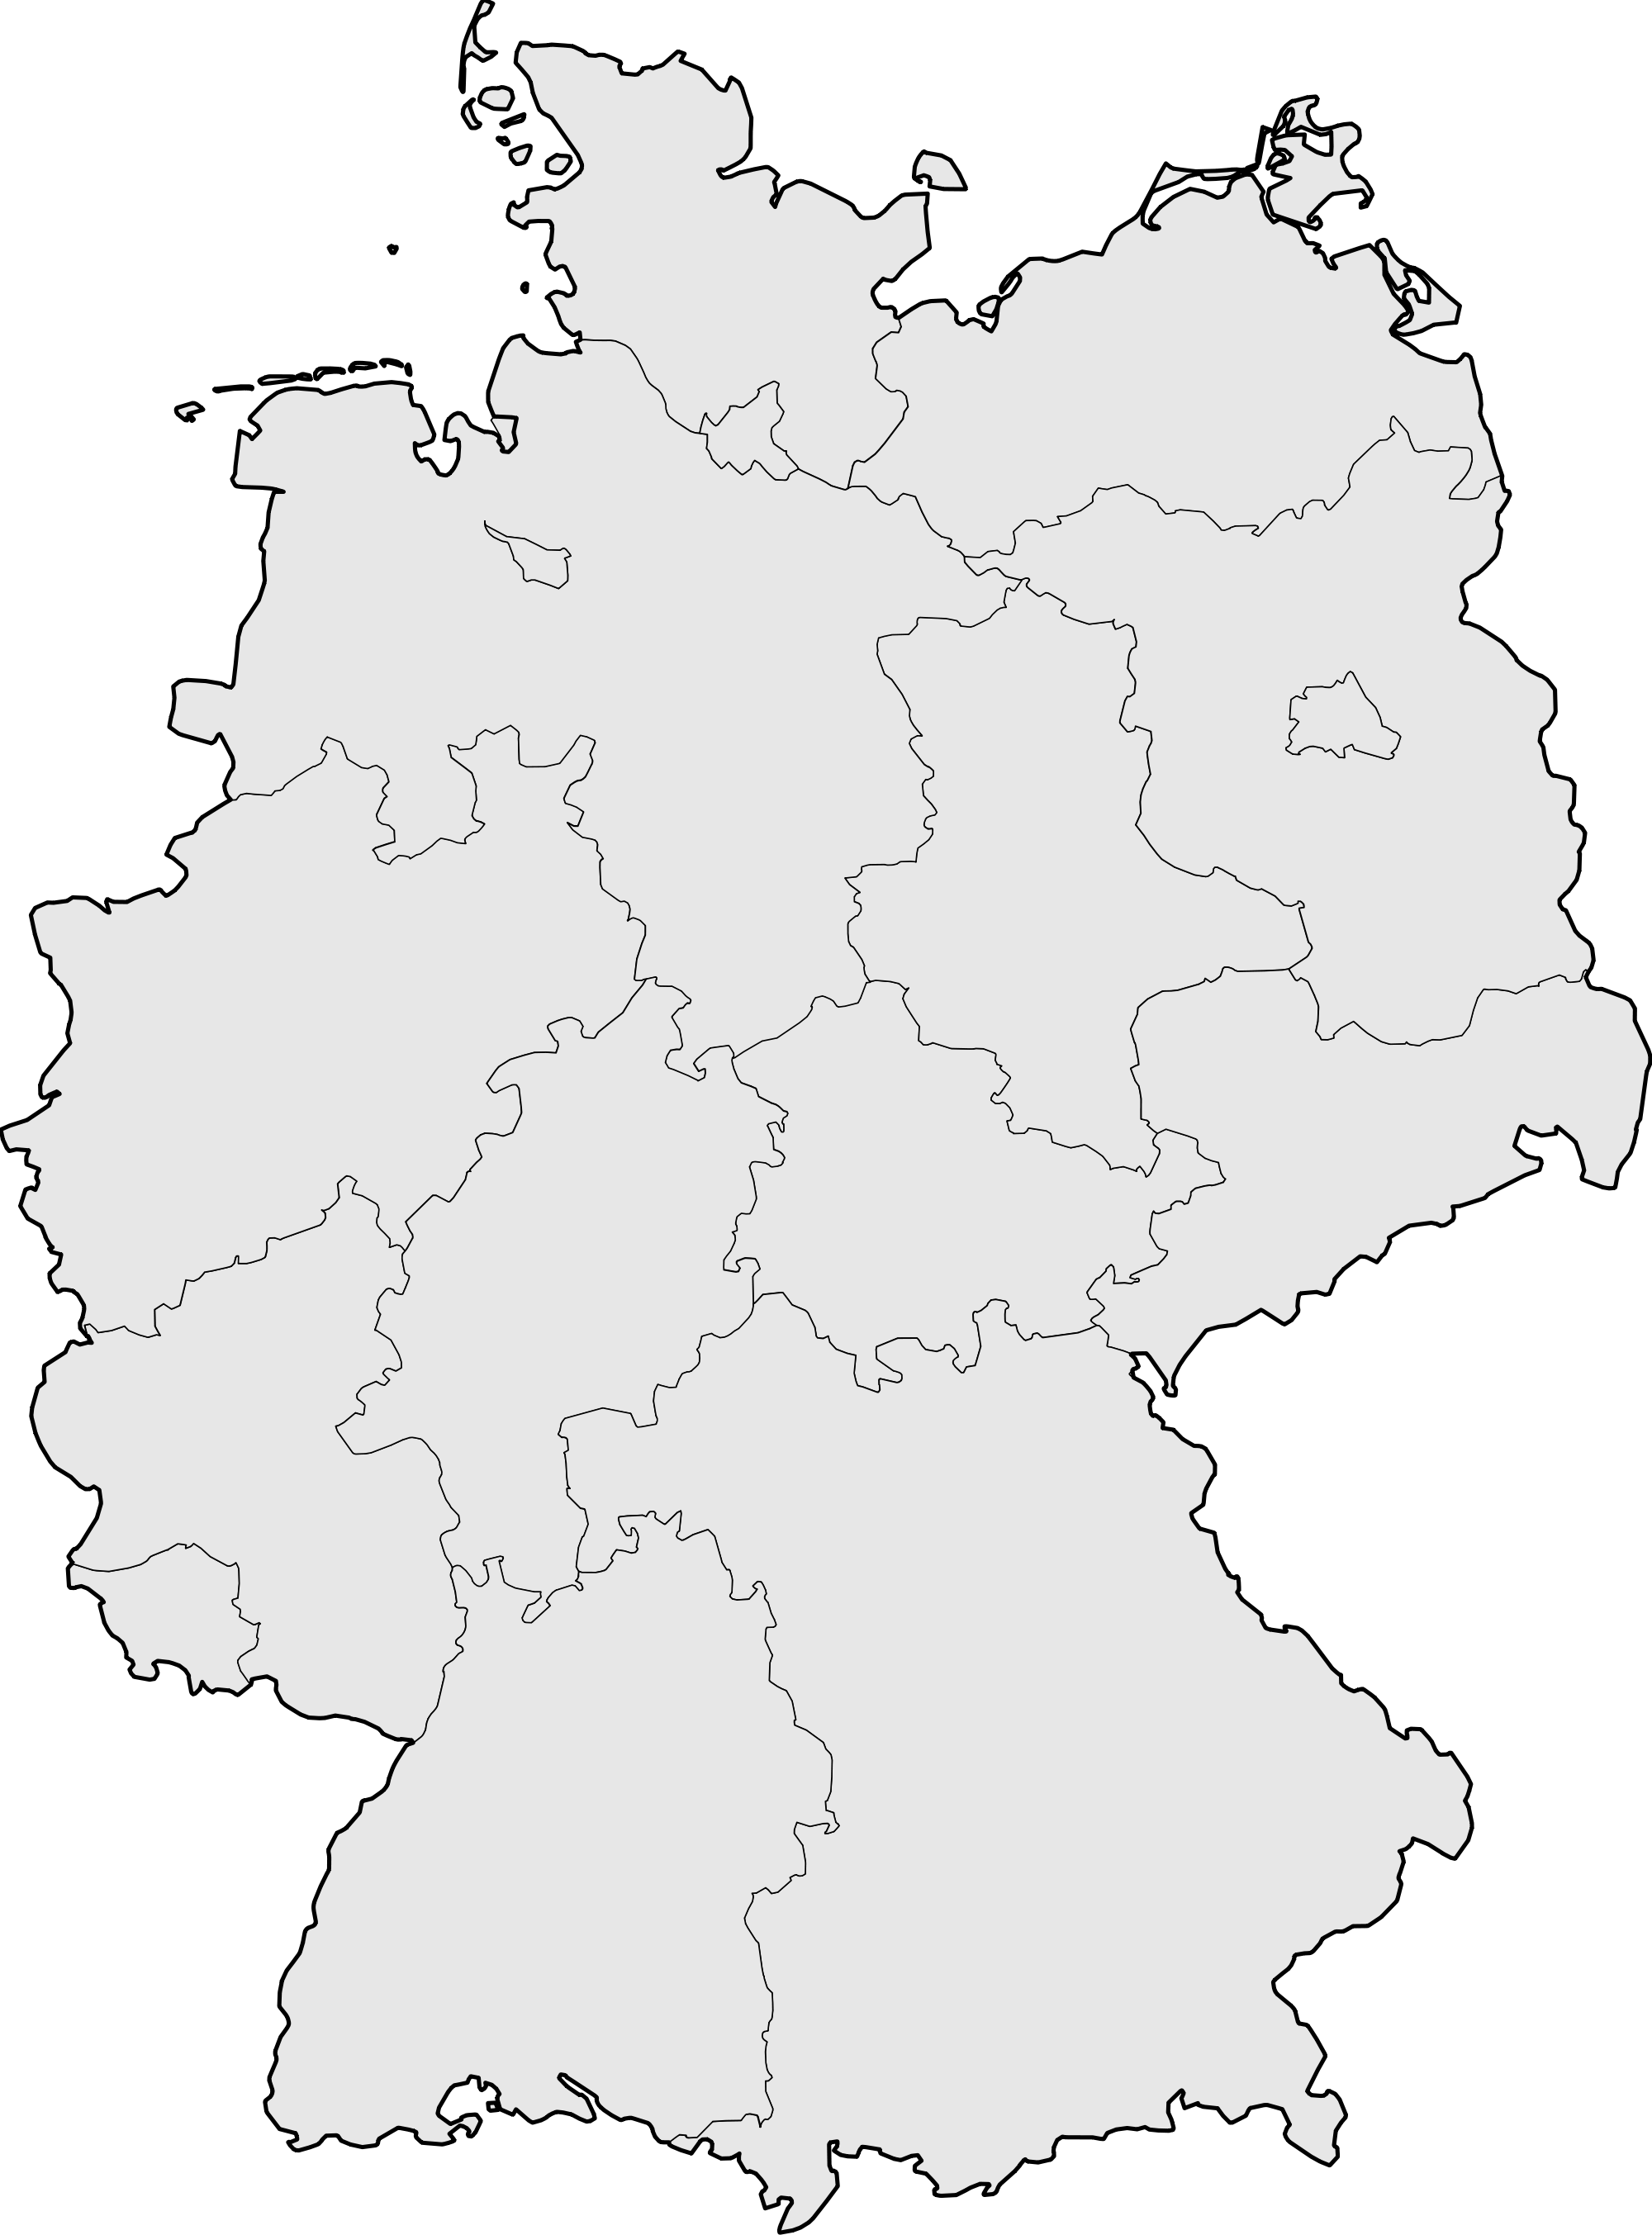 Blank Map Of Germany Germany Blank Map • Mapsof.net